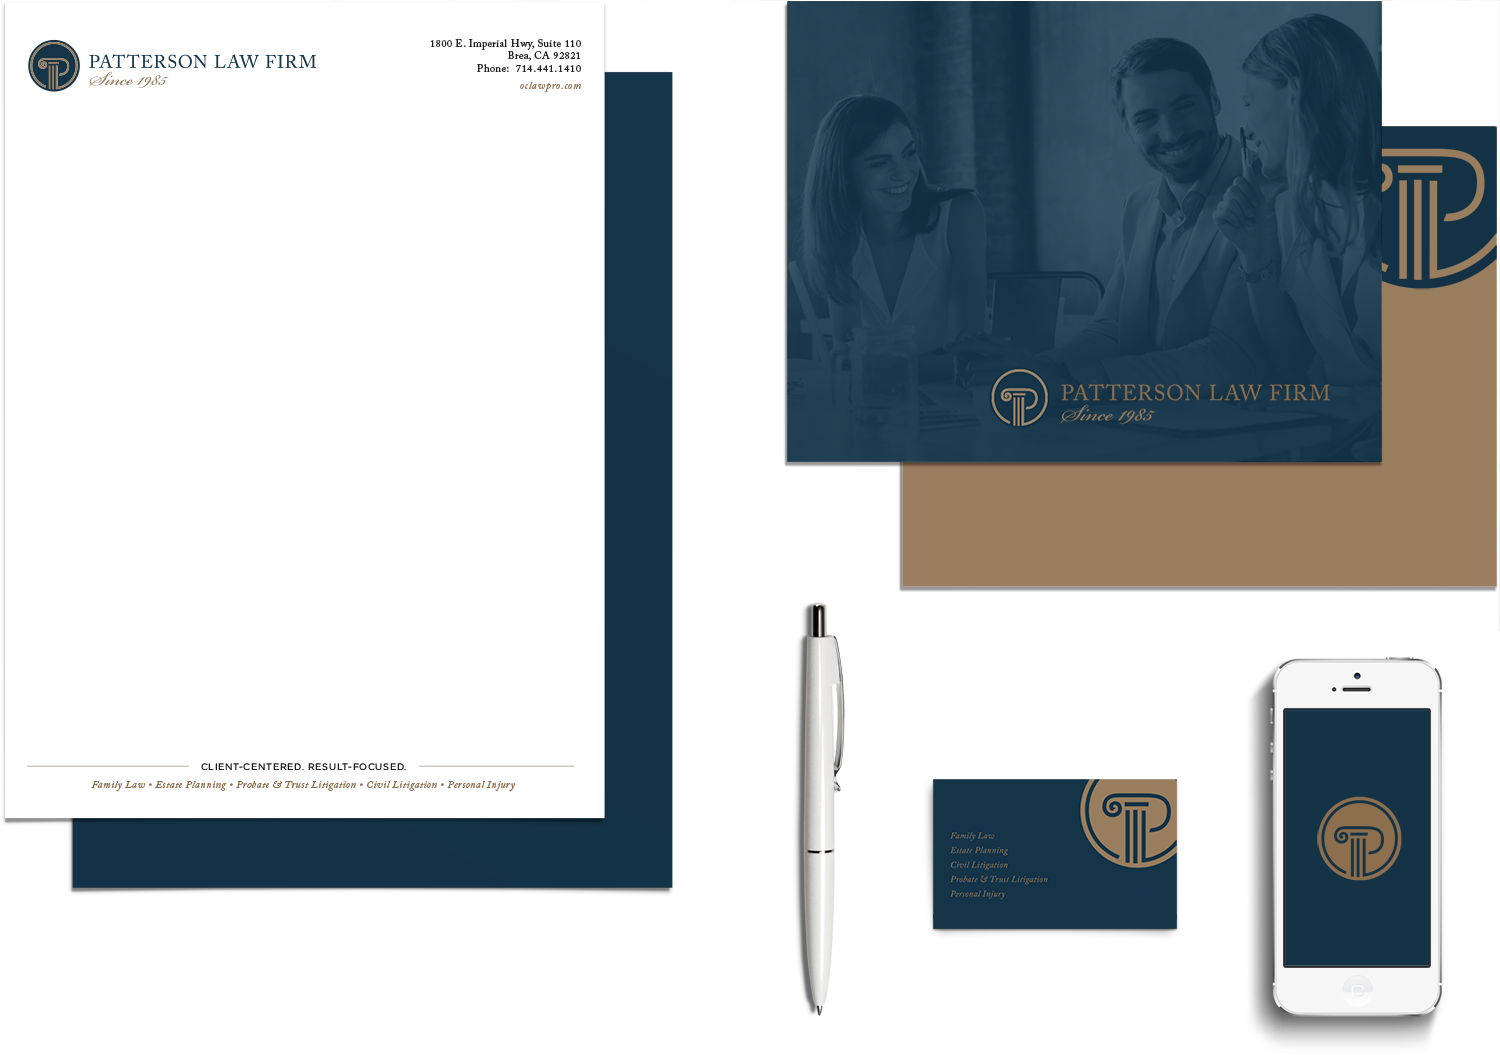 Patterson_Law_Firm_Branding_Portfolio.png